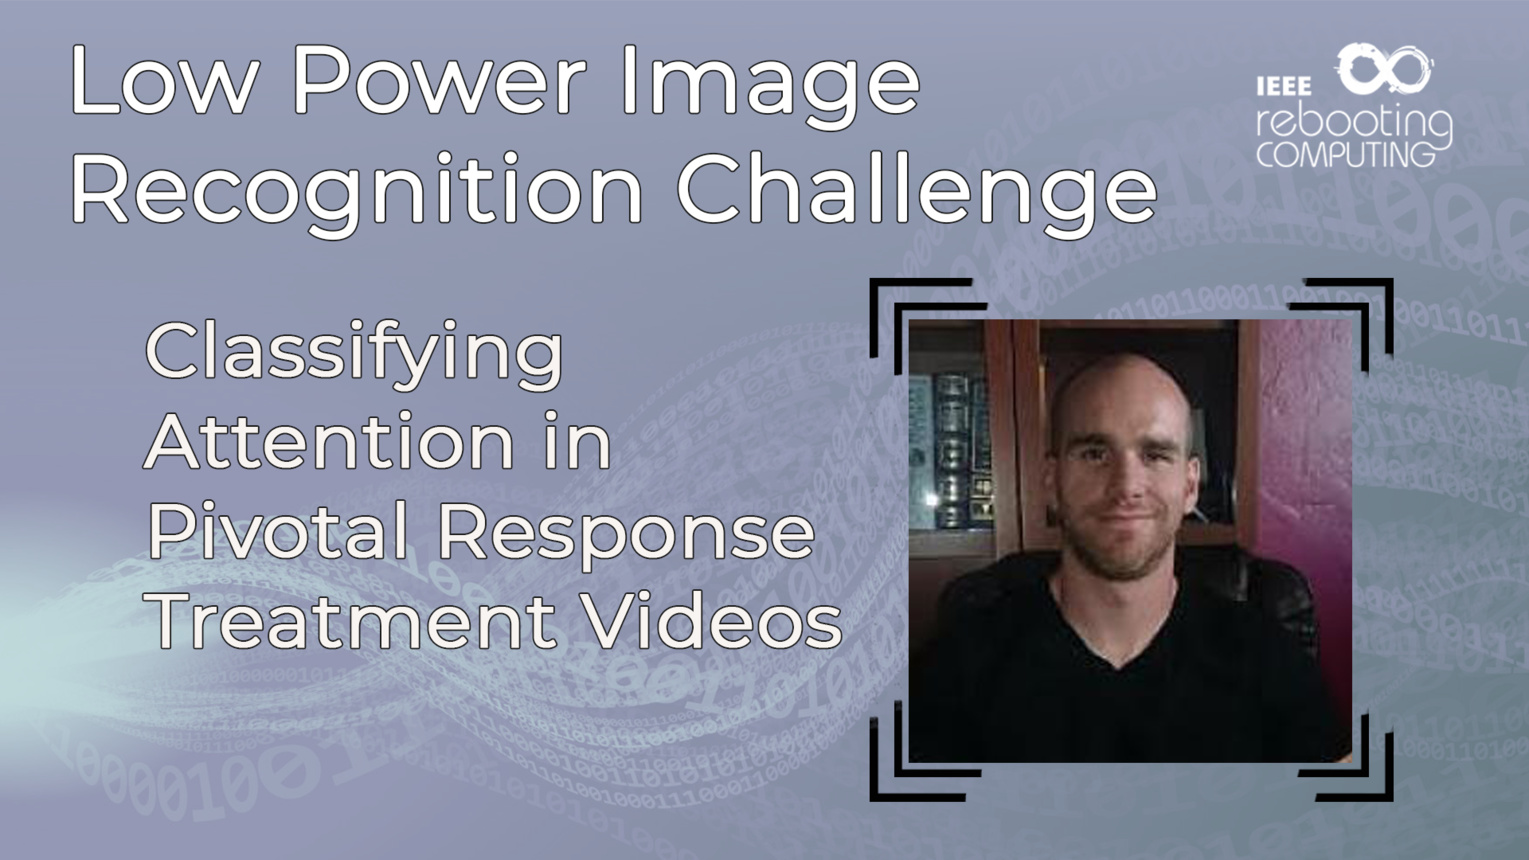 Classifying attention in Pivotal Response Treatment Videos - Corey Heath - LPIRC 2019